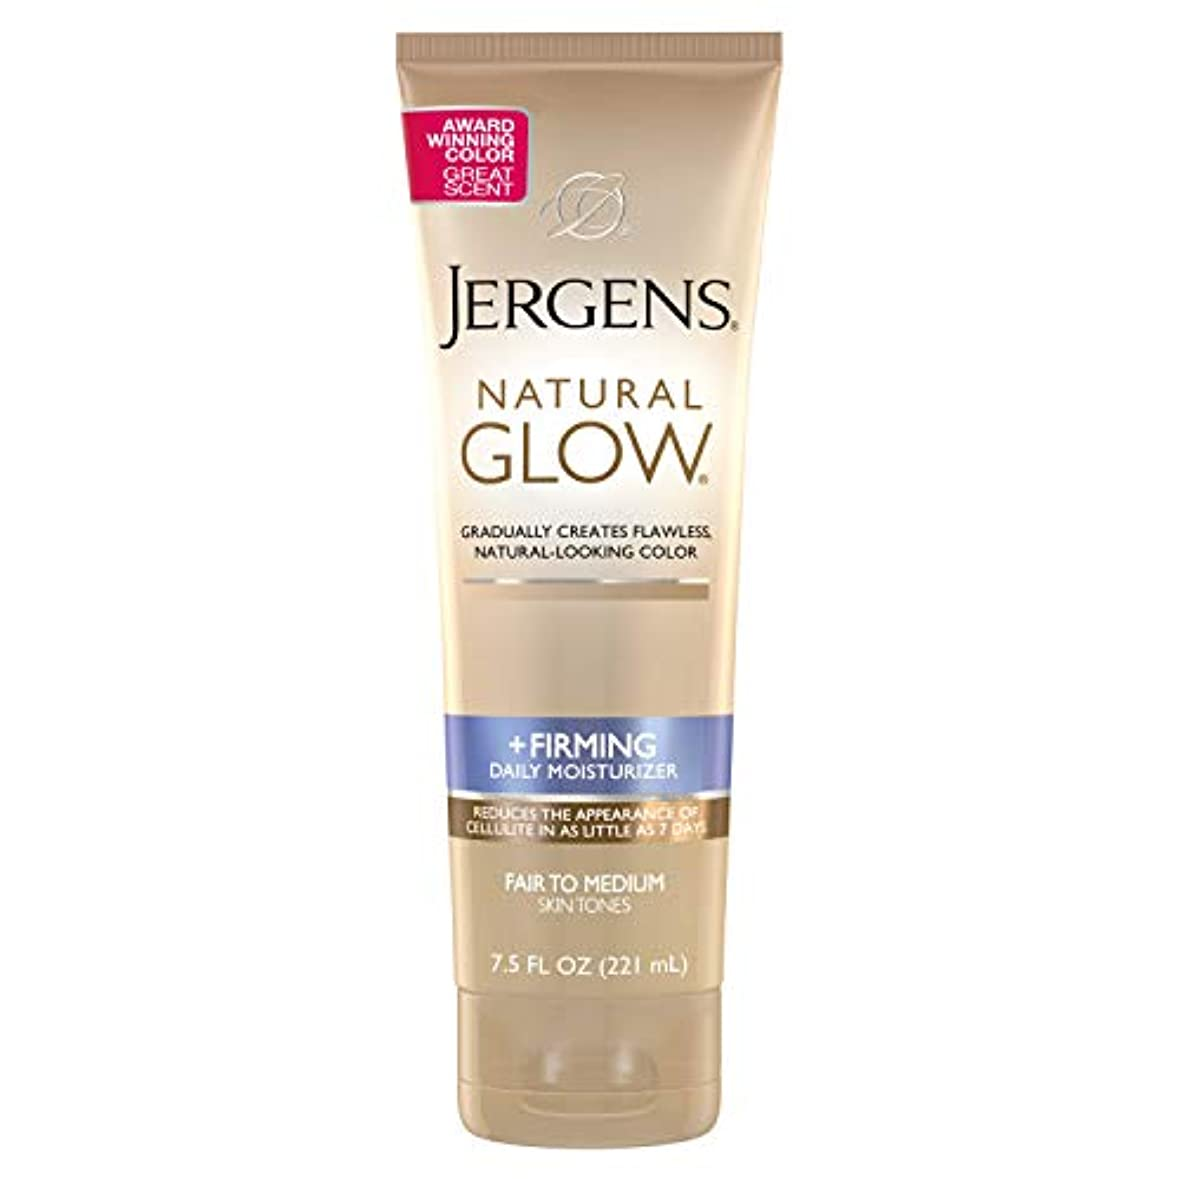 Natural Glow Firming Moisturizer for Fair to Mediu Jergens 7.5 oz Moisturizer For Unisex (並行輸入品)